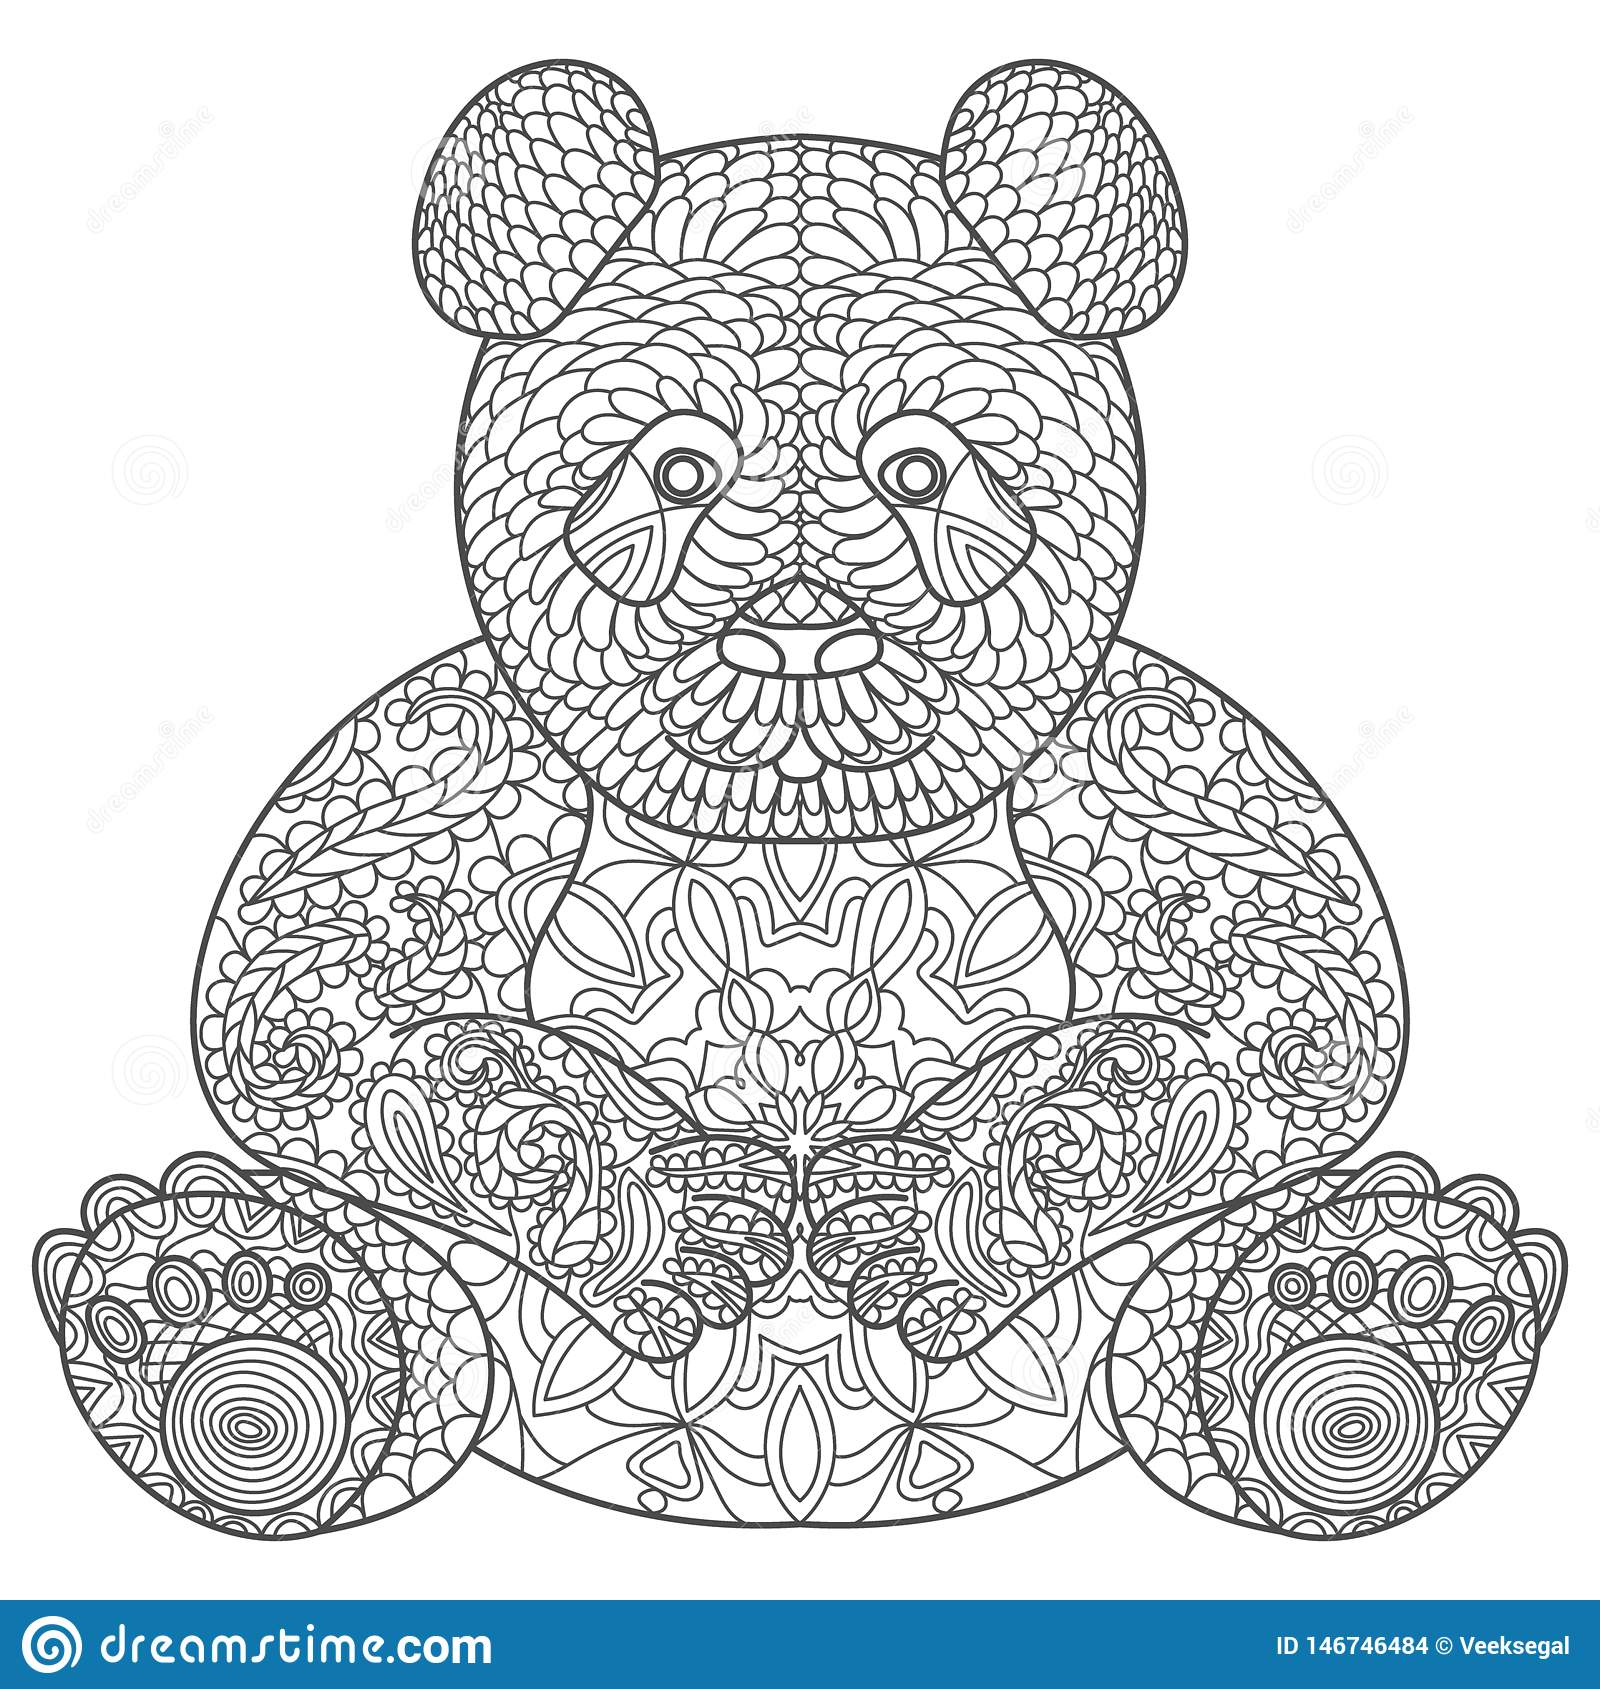 e962823421b51 Sketch for adult antistress coloring page. Hand drawn doodle, zentangle,  floral design elements for coloring book. Vector illustration